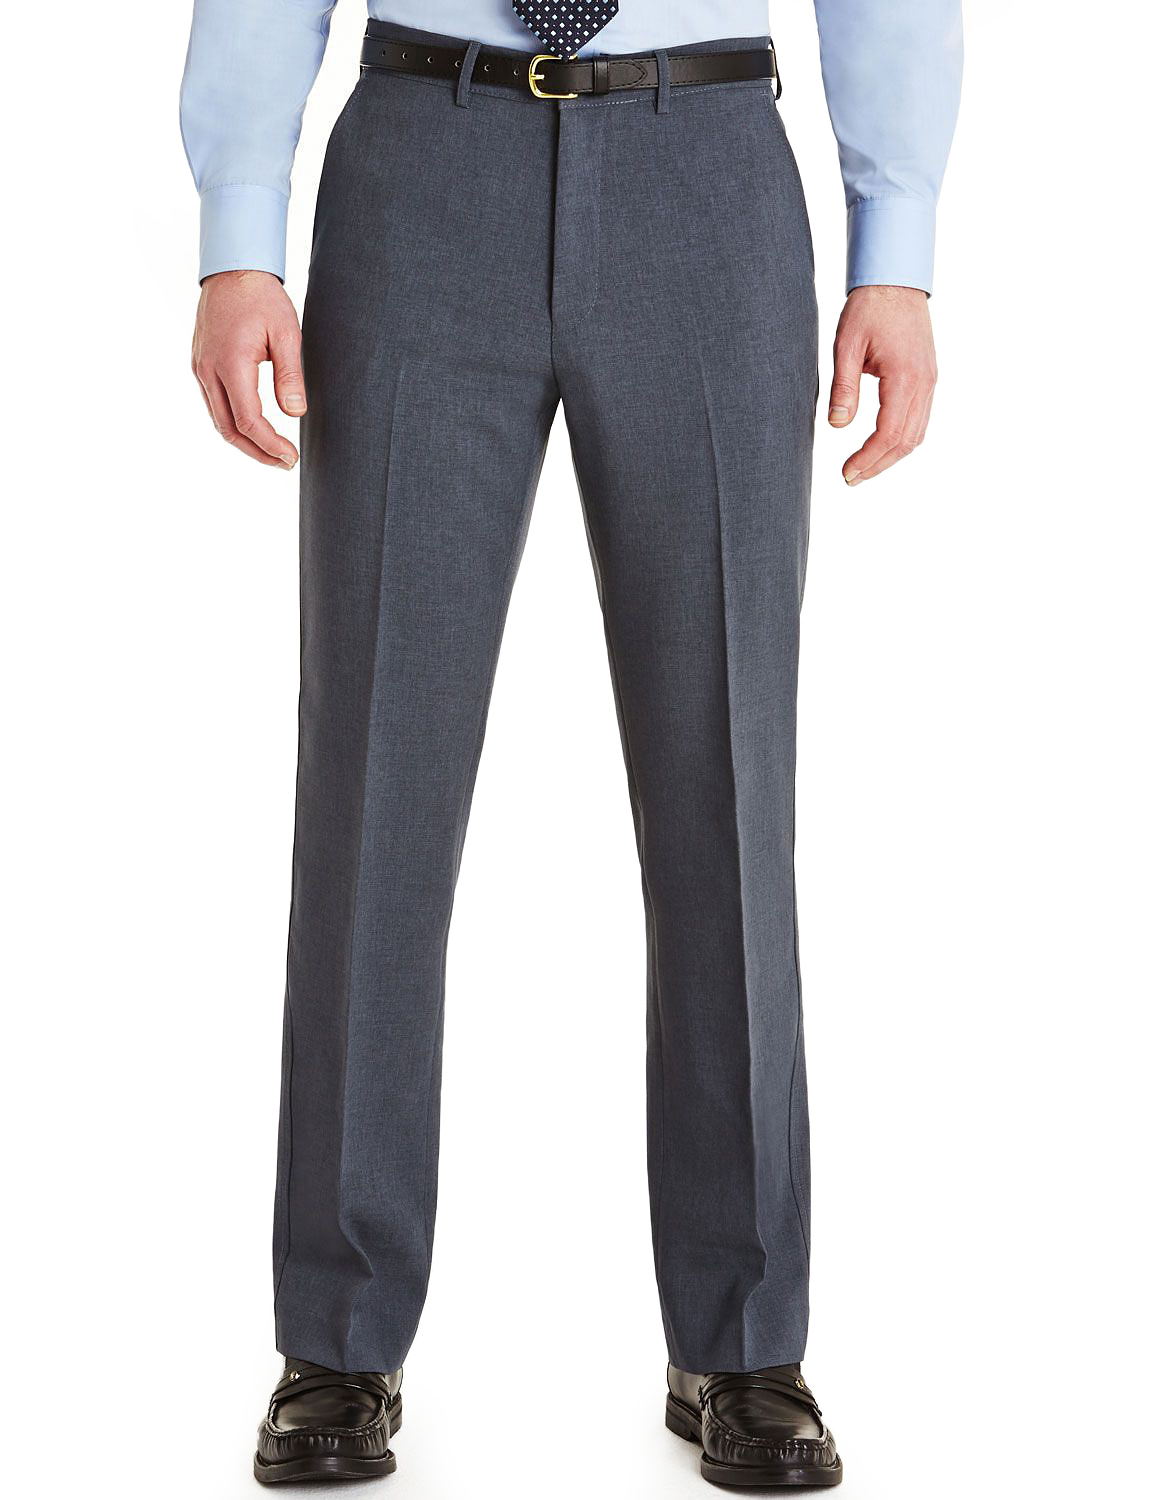 Mens-Farah-Slant-Pocket-Formal-Classic-Trouser-Pants thumbnail 2